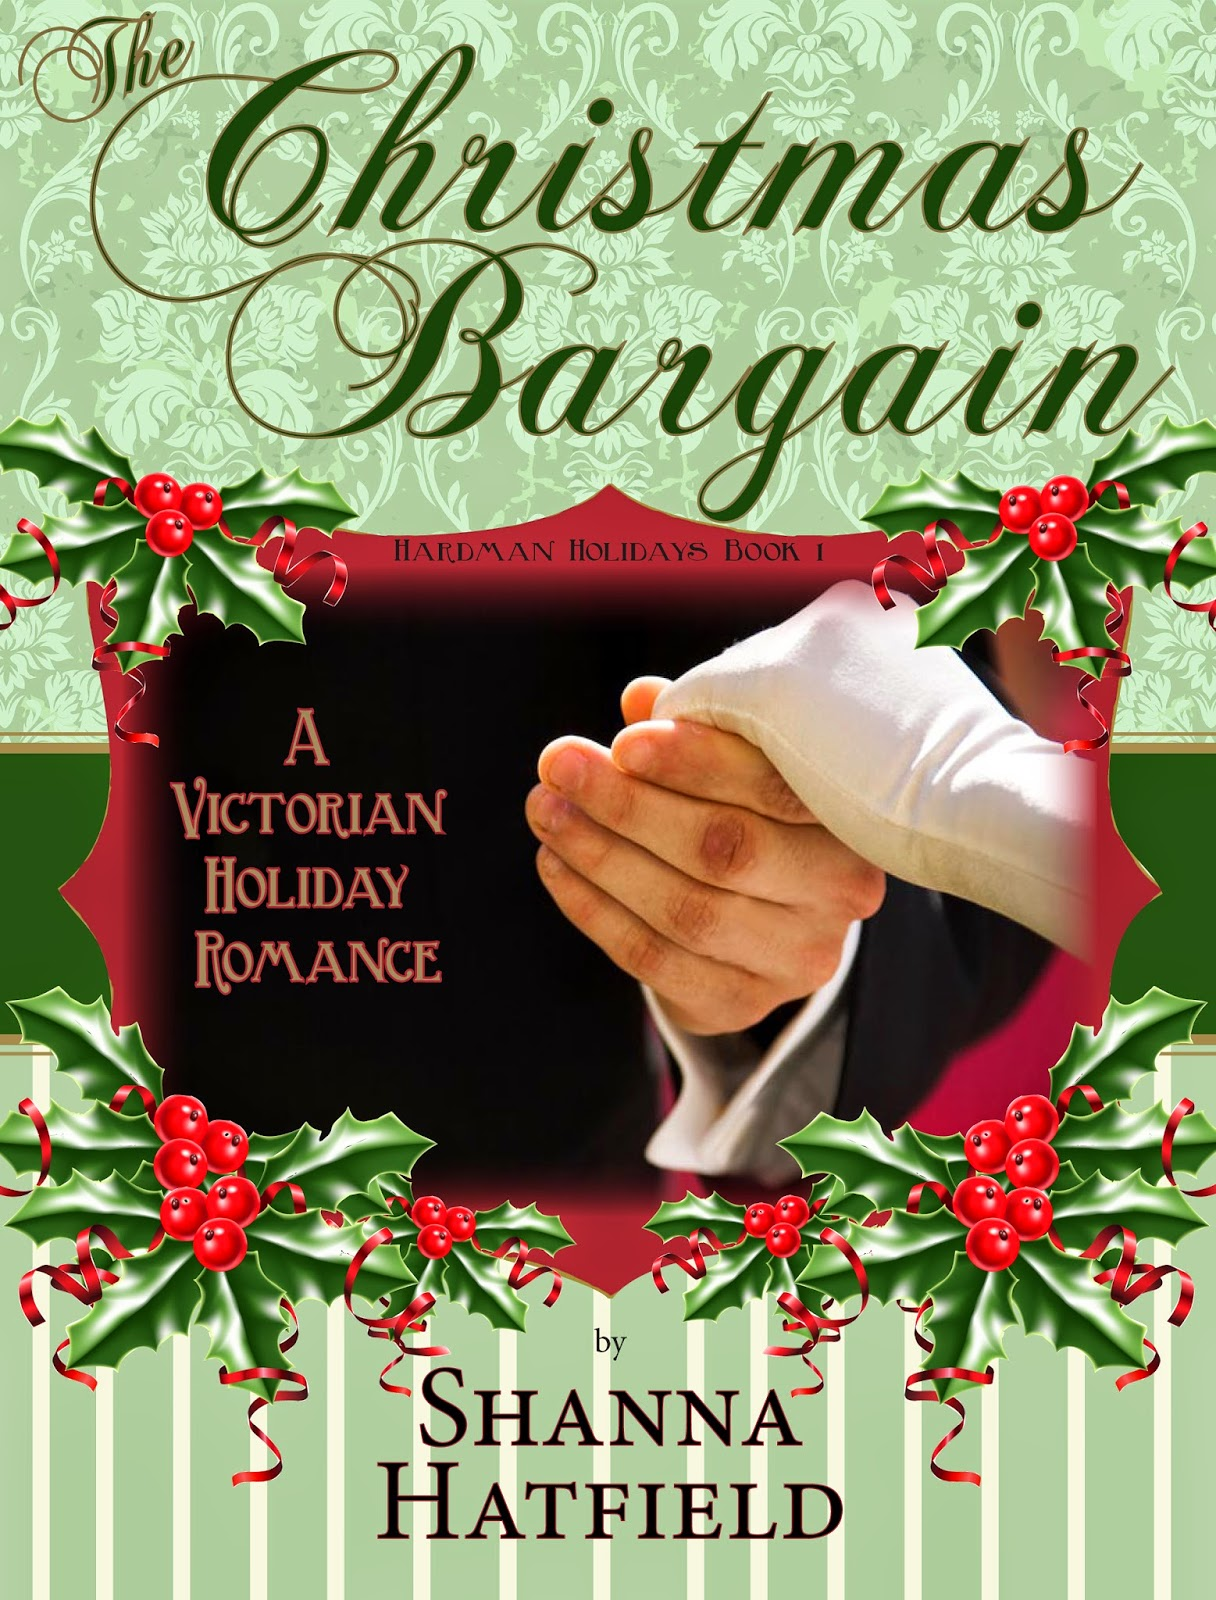 http://www.amazon.com/Christmas-Bargain-Victorian-Holiday-Holidays-ebook/dp/B00A71KP8O/ref=sr_1_1?ie=UTF8&qid=1417479724&sr=8-1&keywords=the+christmas+bargain